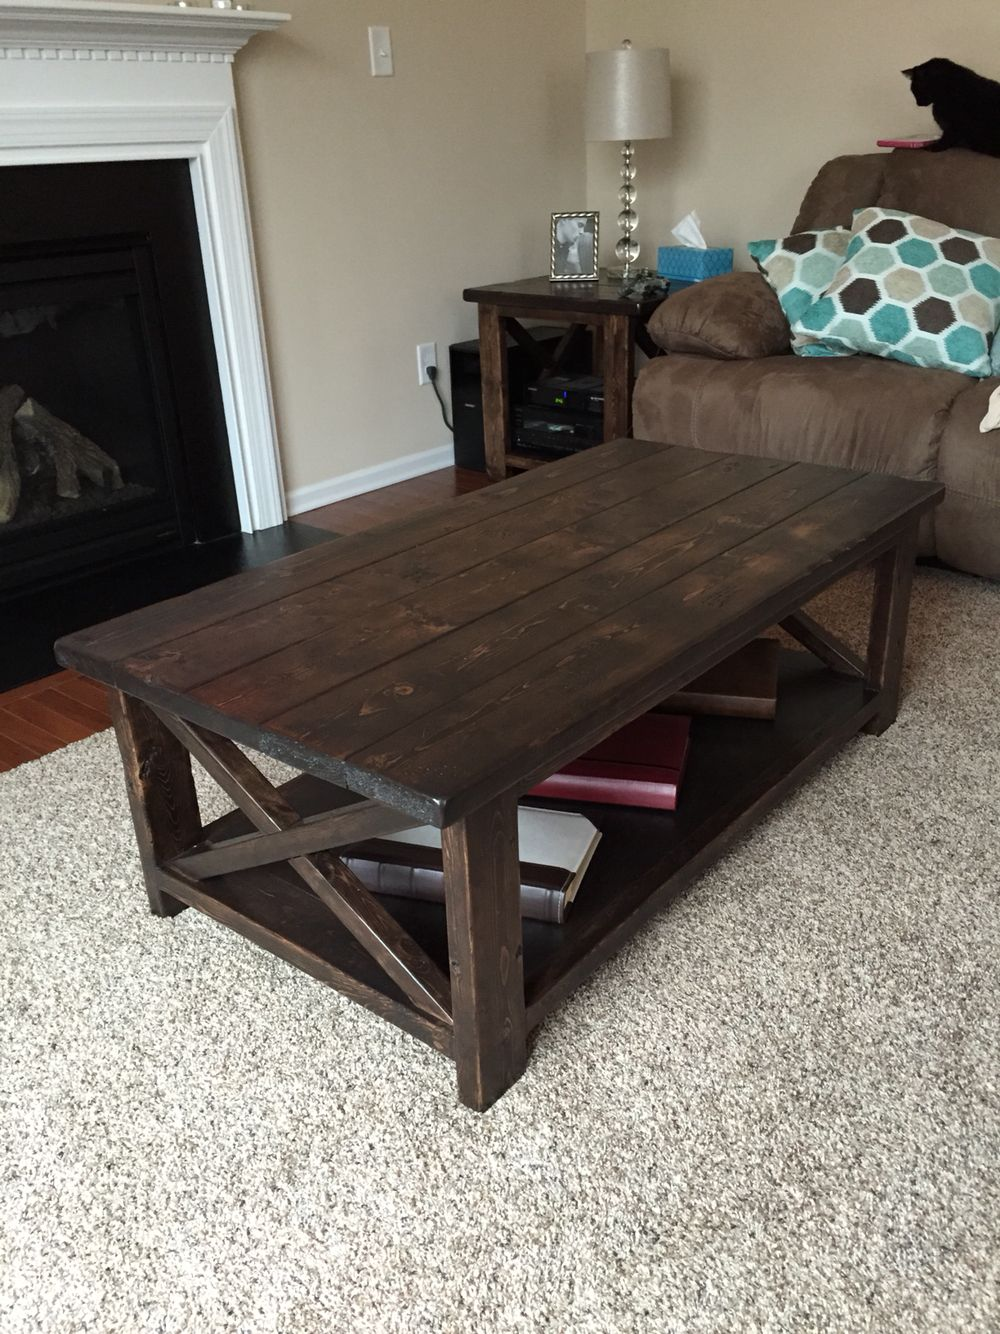 Merveilleux Rustic X Coffee Table   DIY Projects